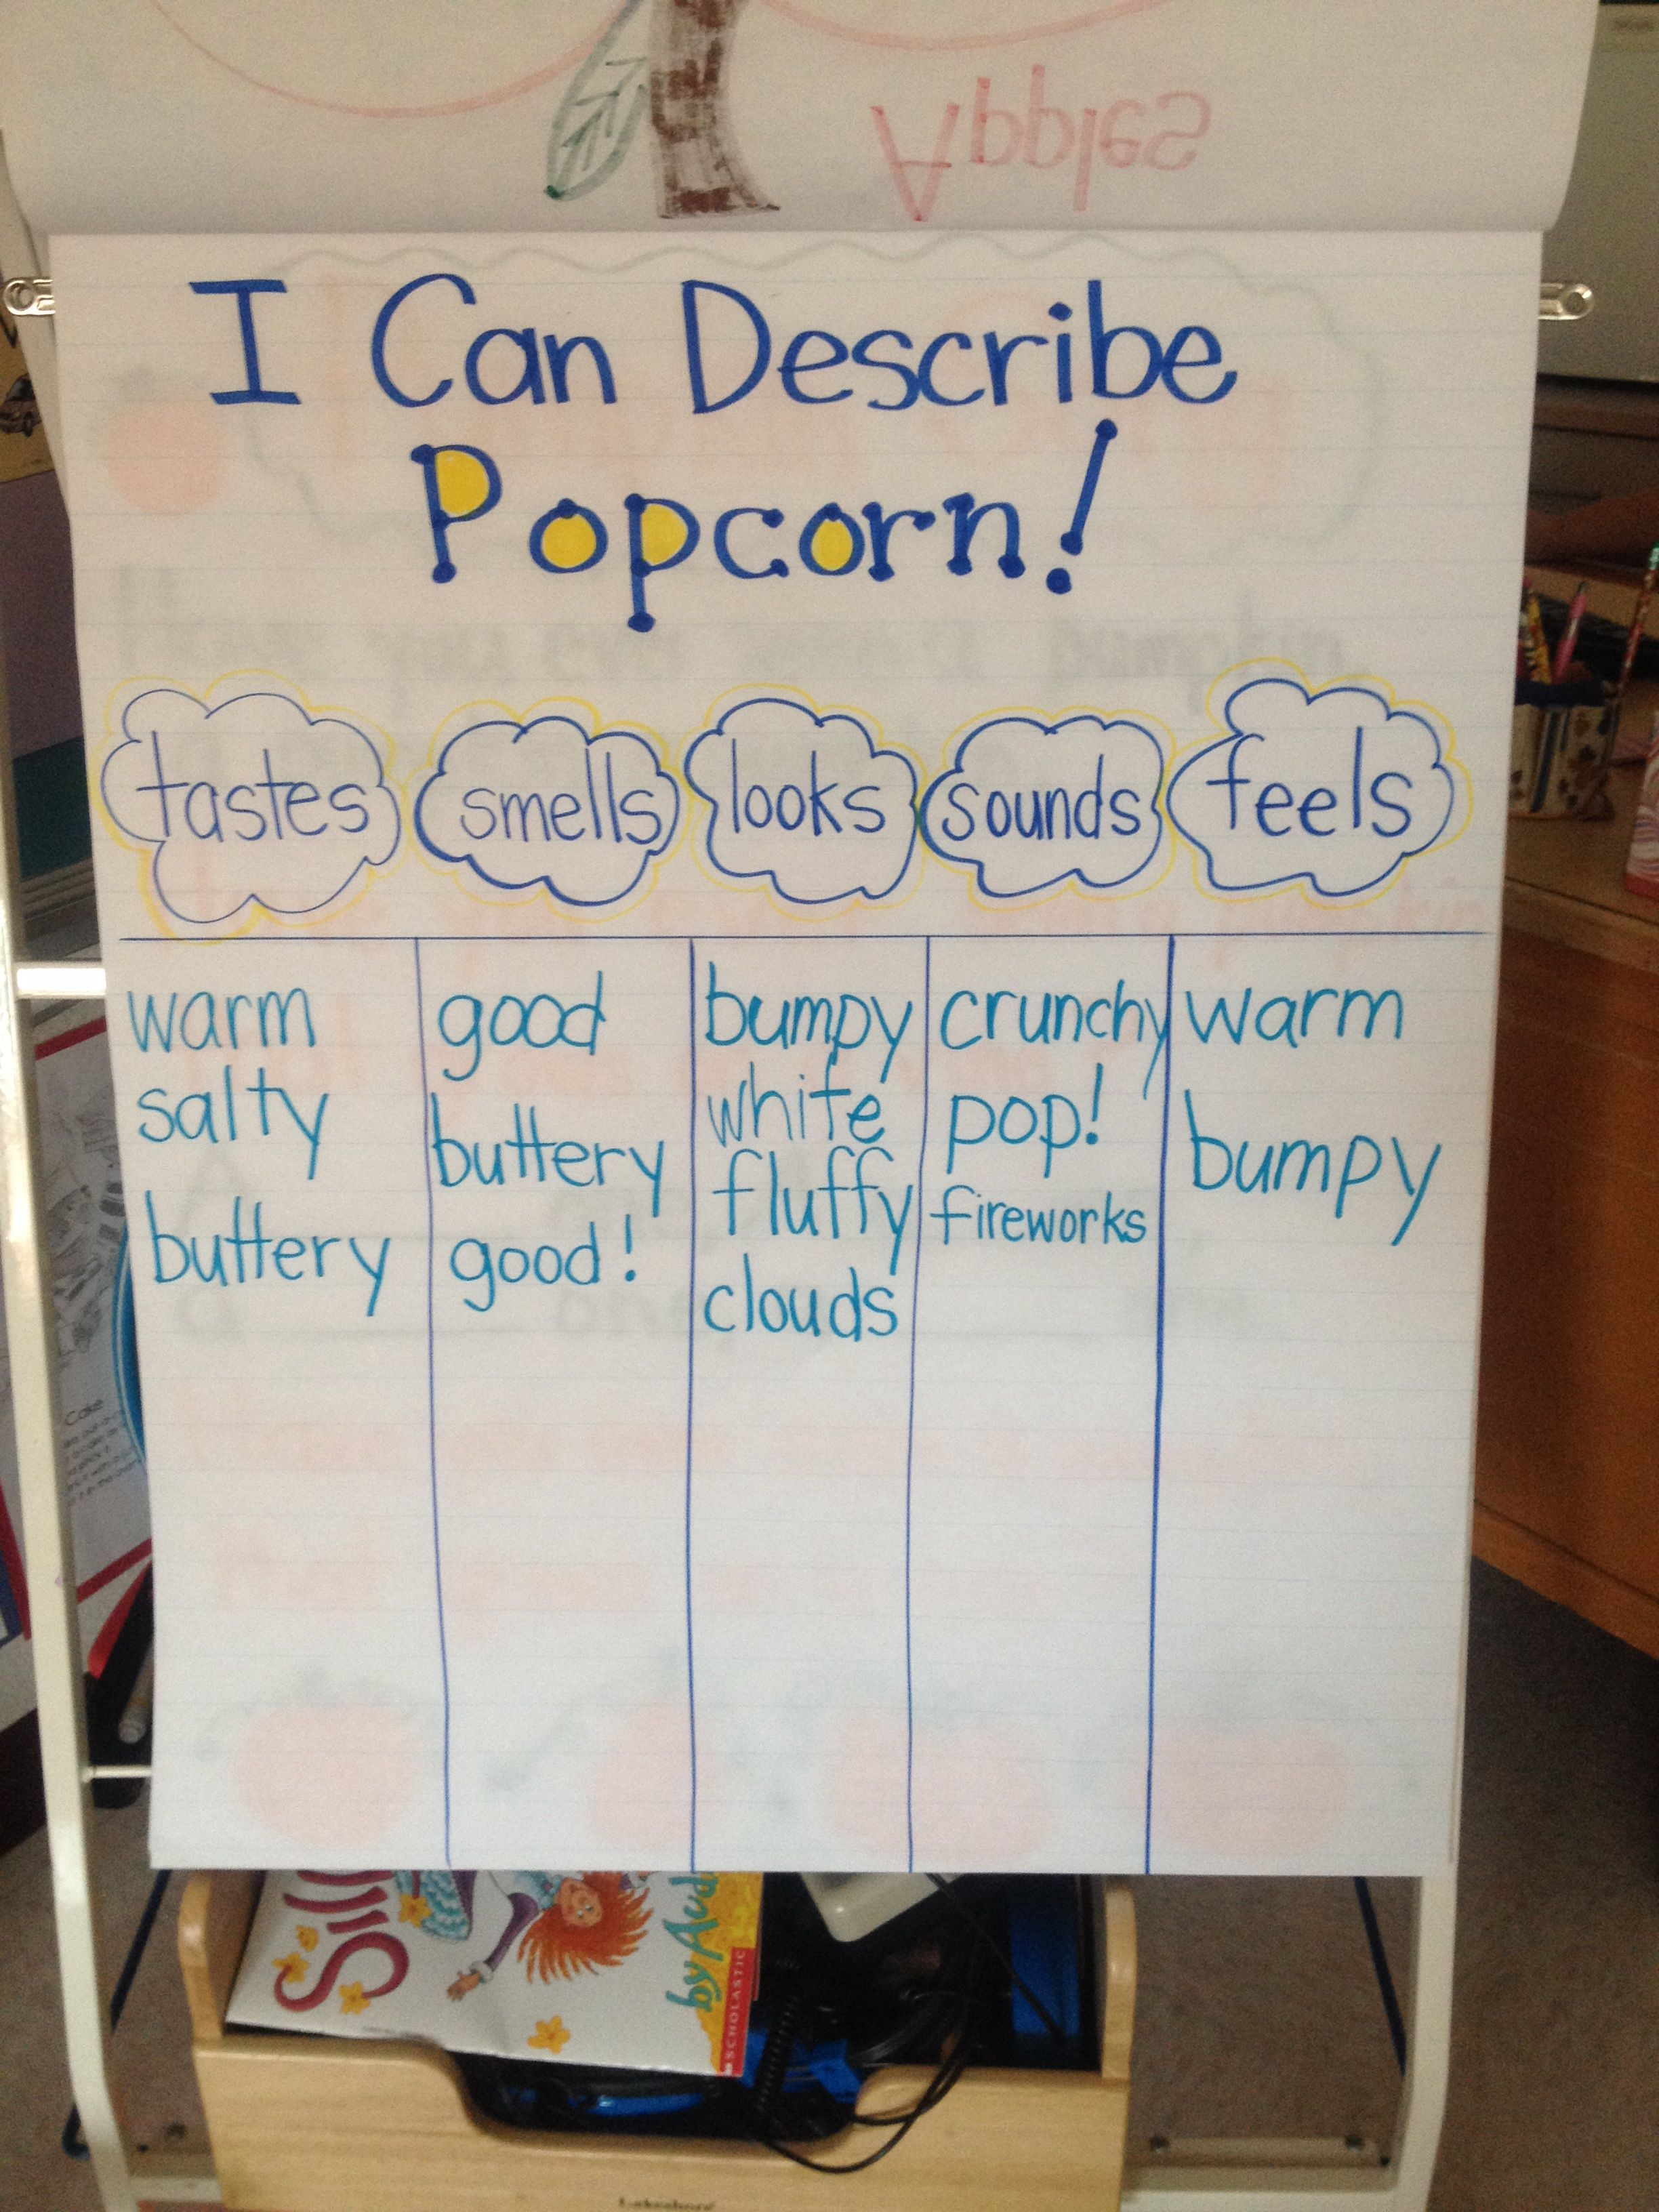 5 senses wouldn t use popcorn toddlers but be an apple 5 senses wouldn t use popcorn toddlers but be an apple or